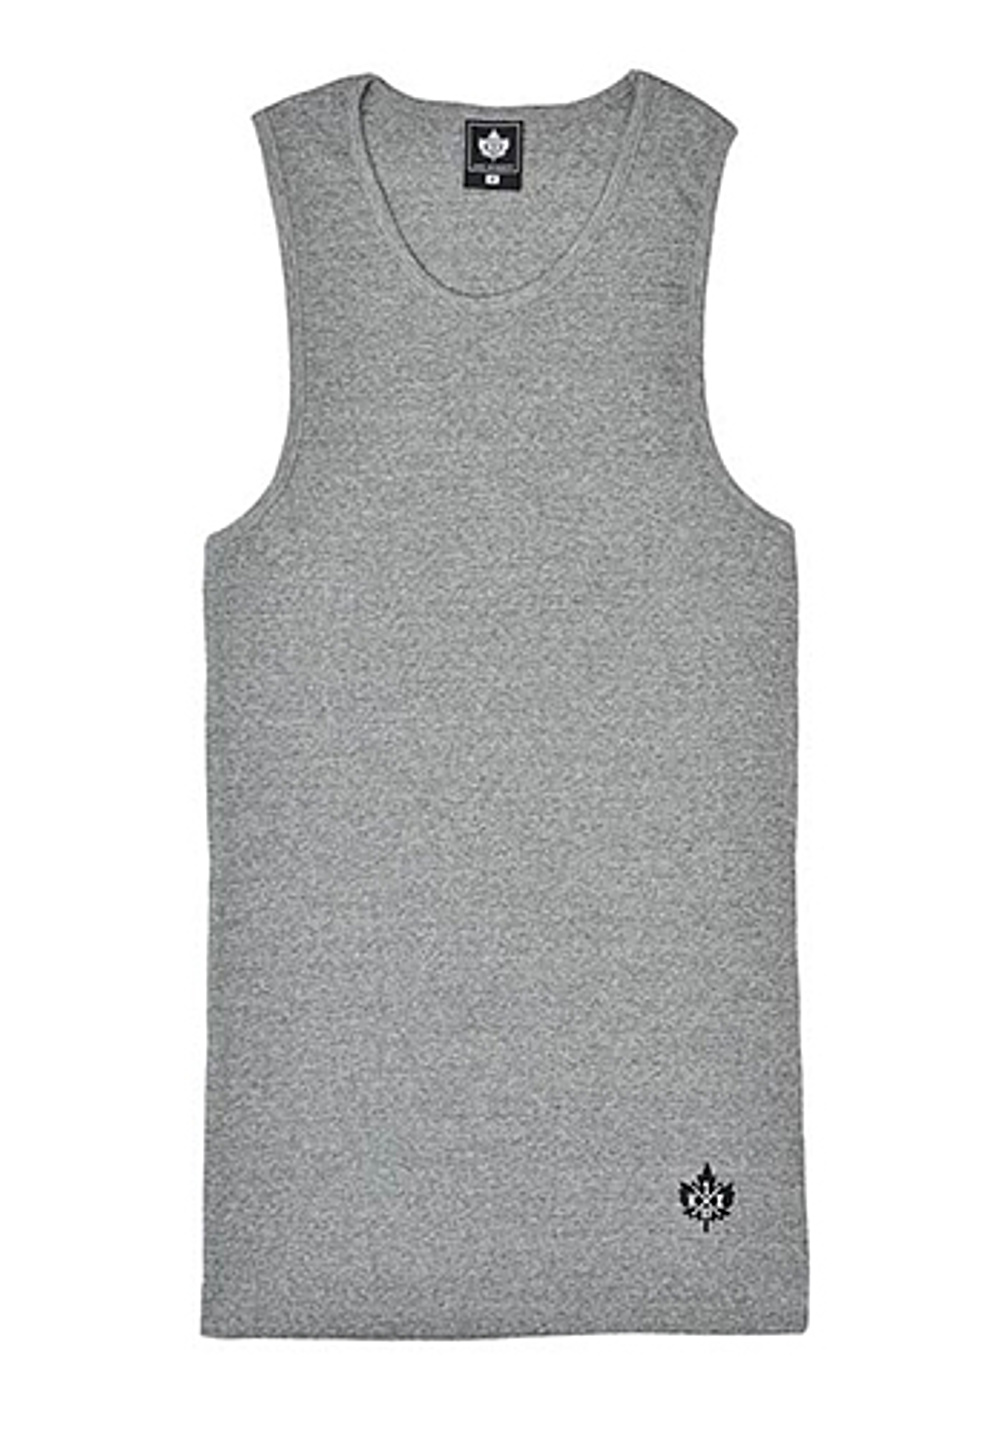 K1X Authentic Wifebeater - Top for Men - Grey - Planet Sports